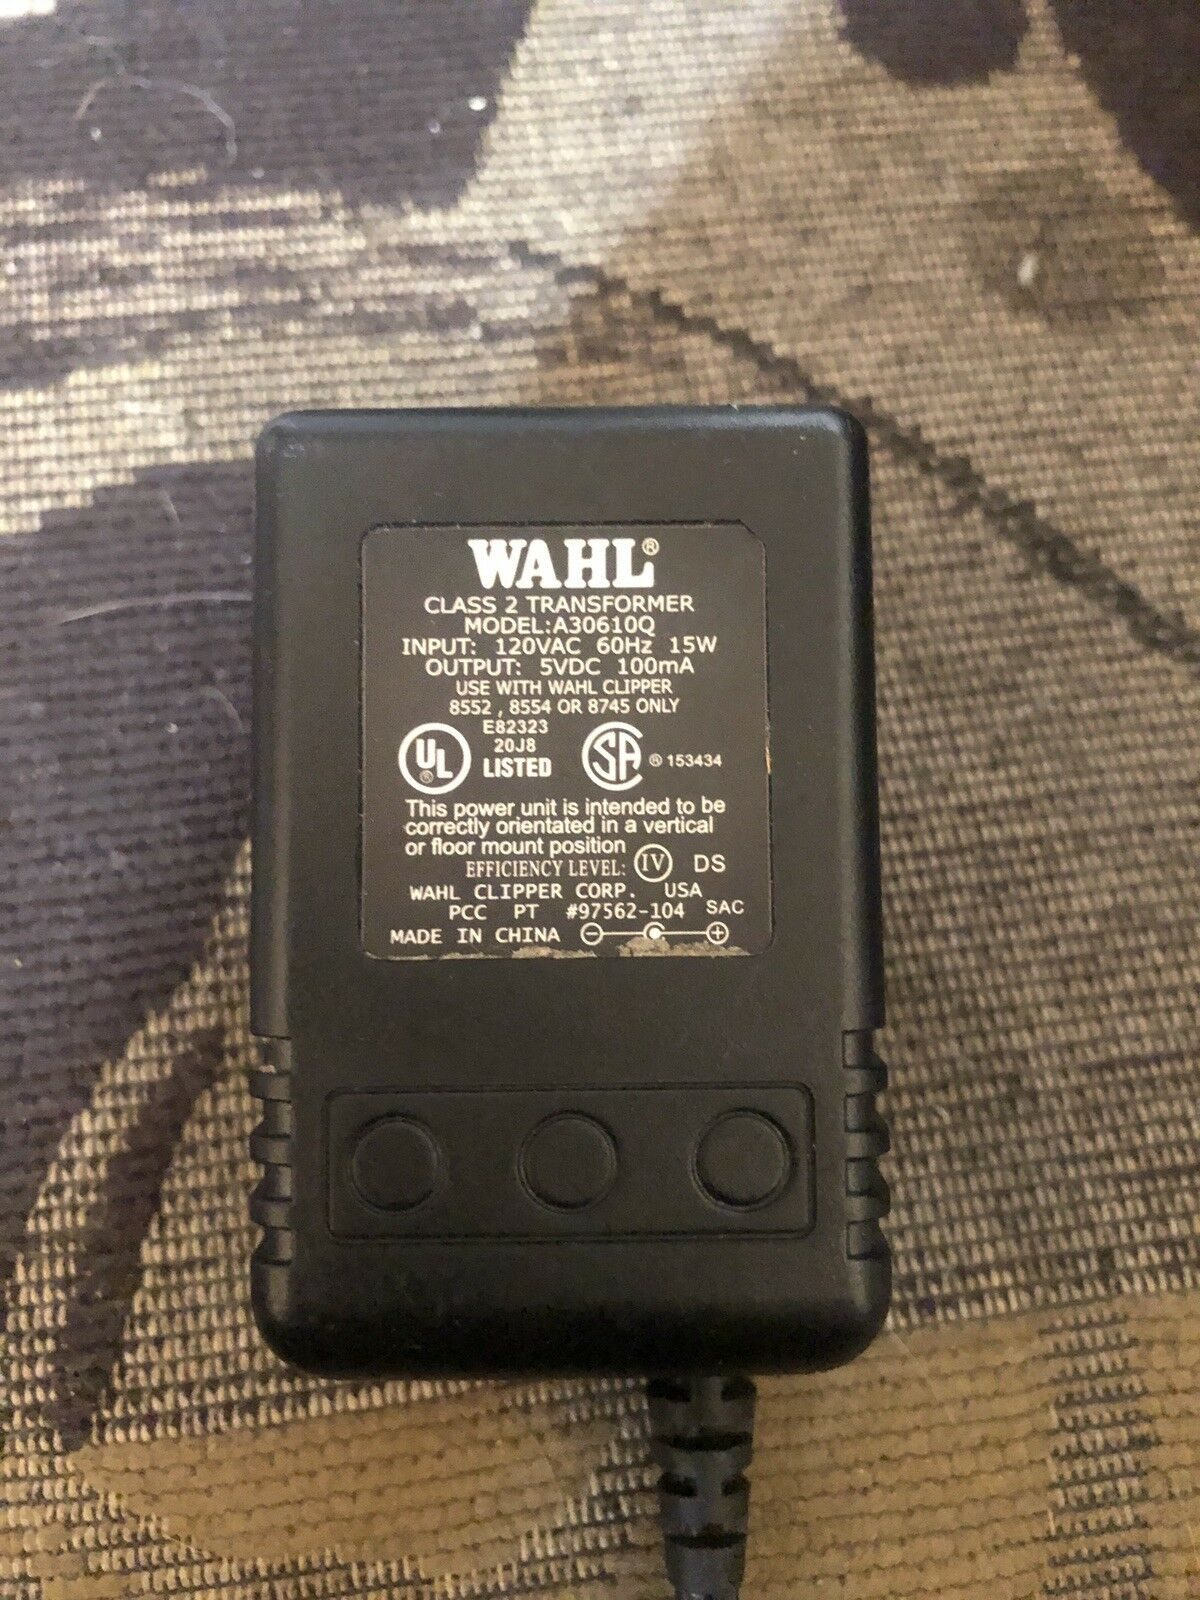 Wahl PRO SERIES CHARGER/CORD 4869